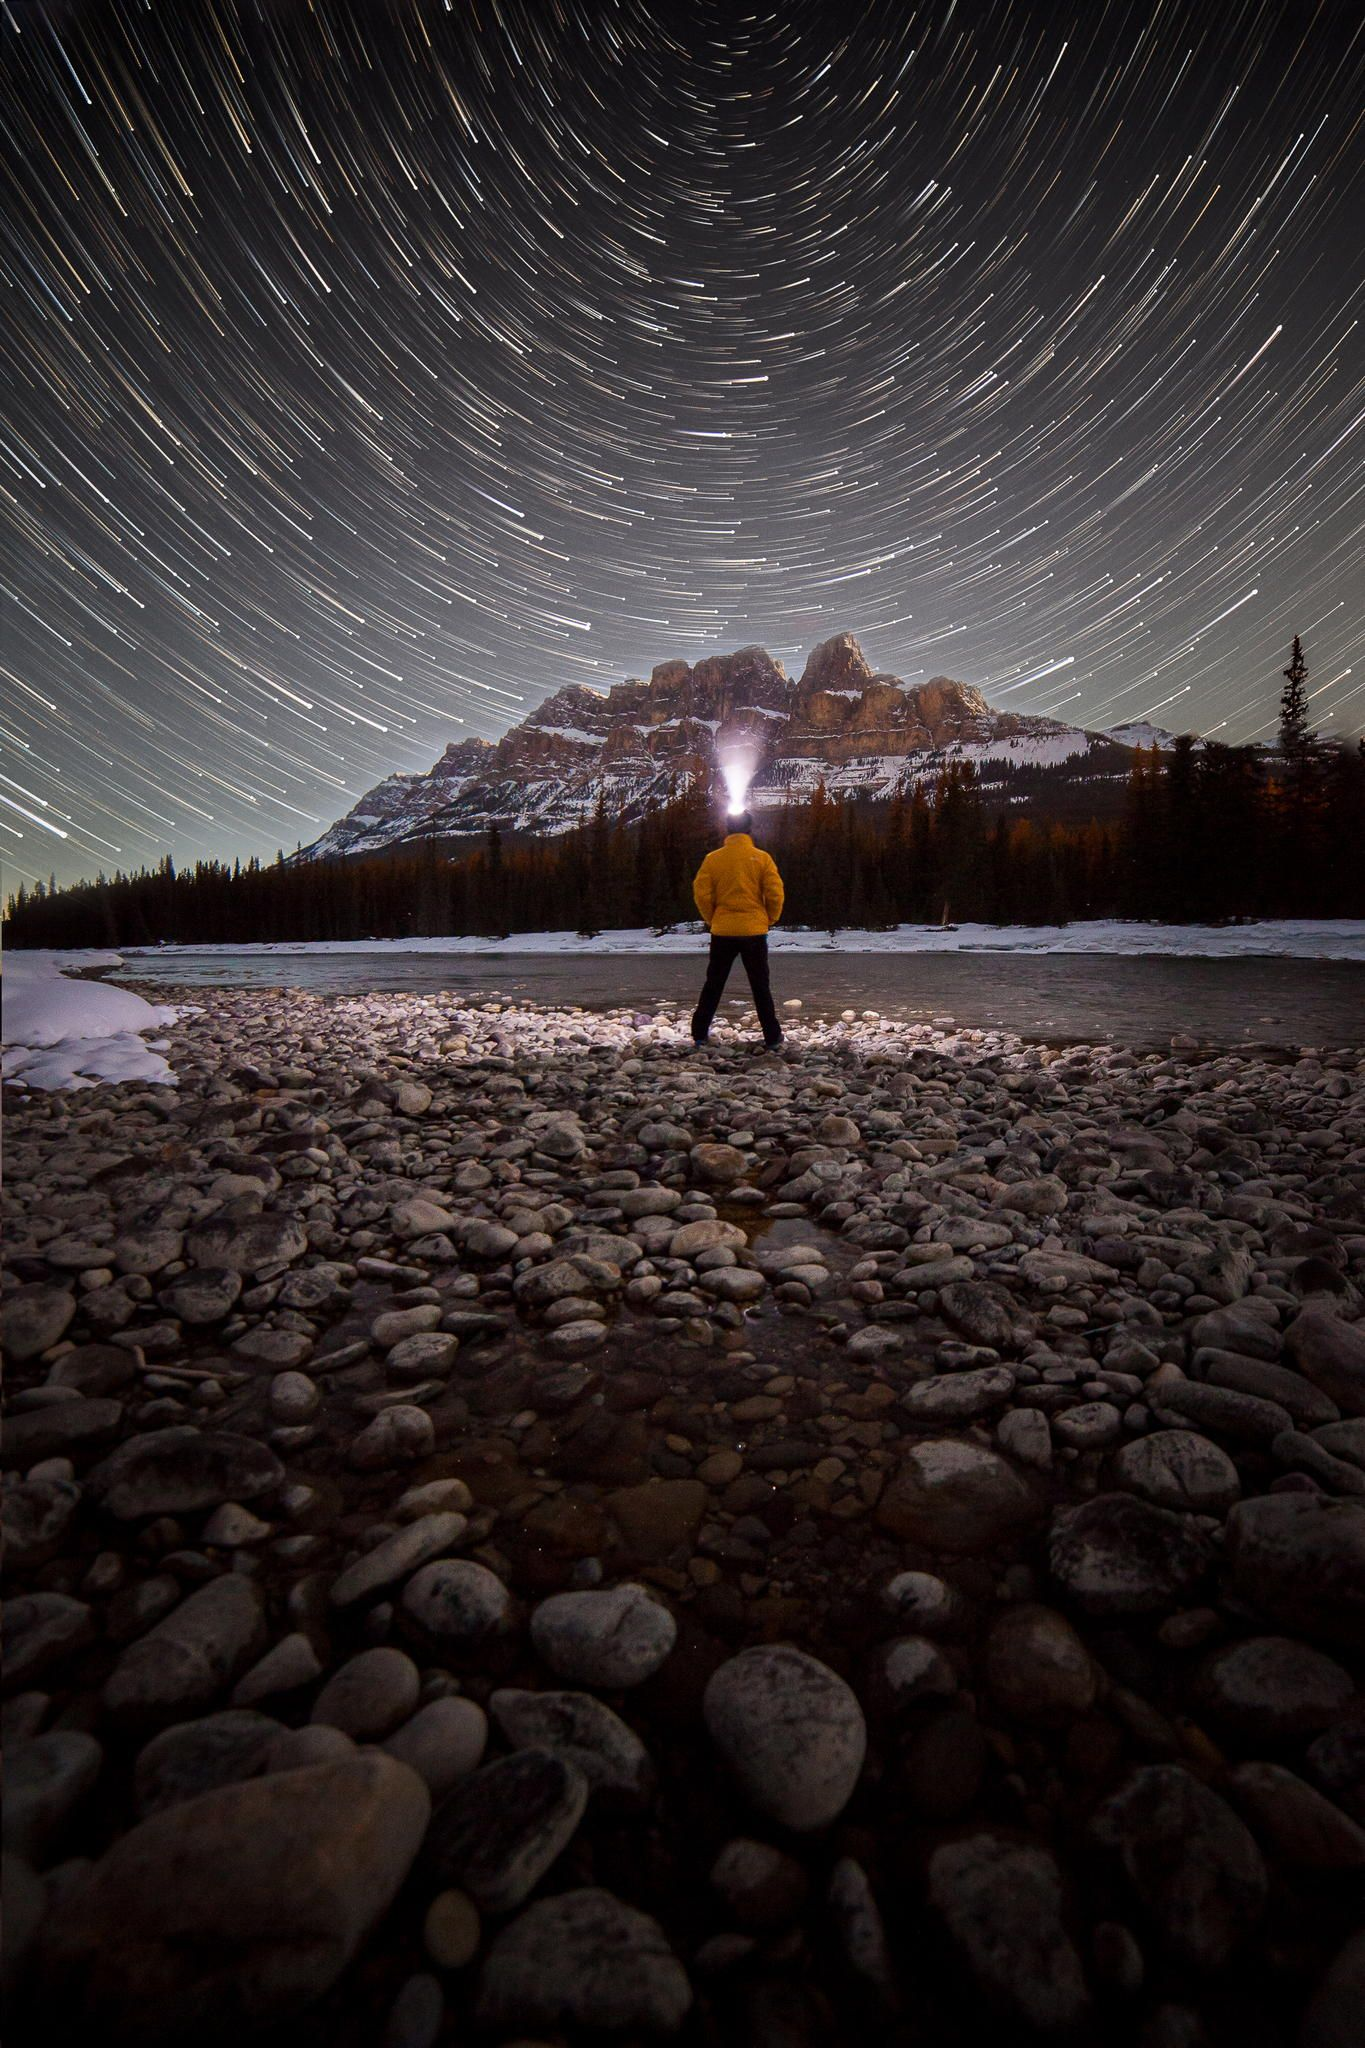 The hairs on my nostrils freezing with every inhale, the lapping of the water along the shores of the Bow river in front, the rustle in the bushes behind making a Chipmunk sound as big as a Bear; a beautifully chilling night under the stars.   Captured along the shores of the Bow River in Banff National Park in Spring. 91 photographs created this scene to create the star trails.